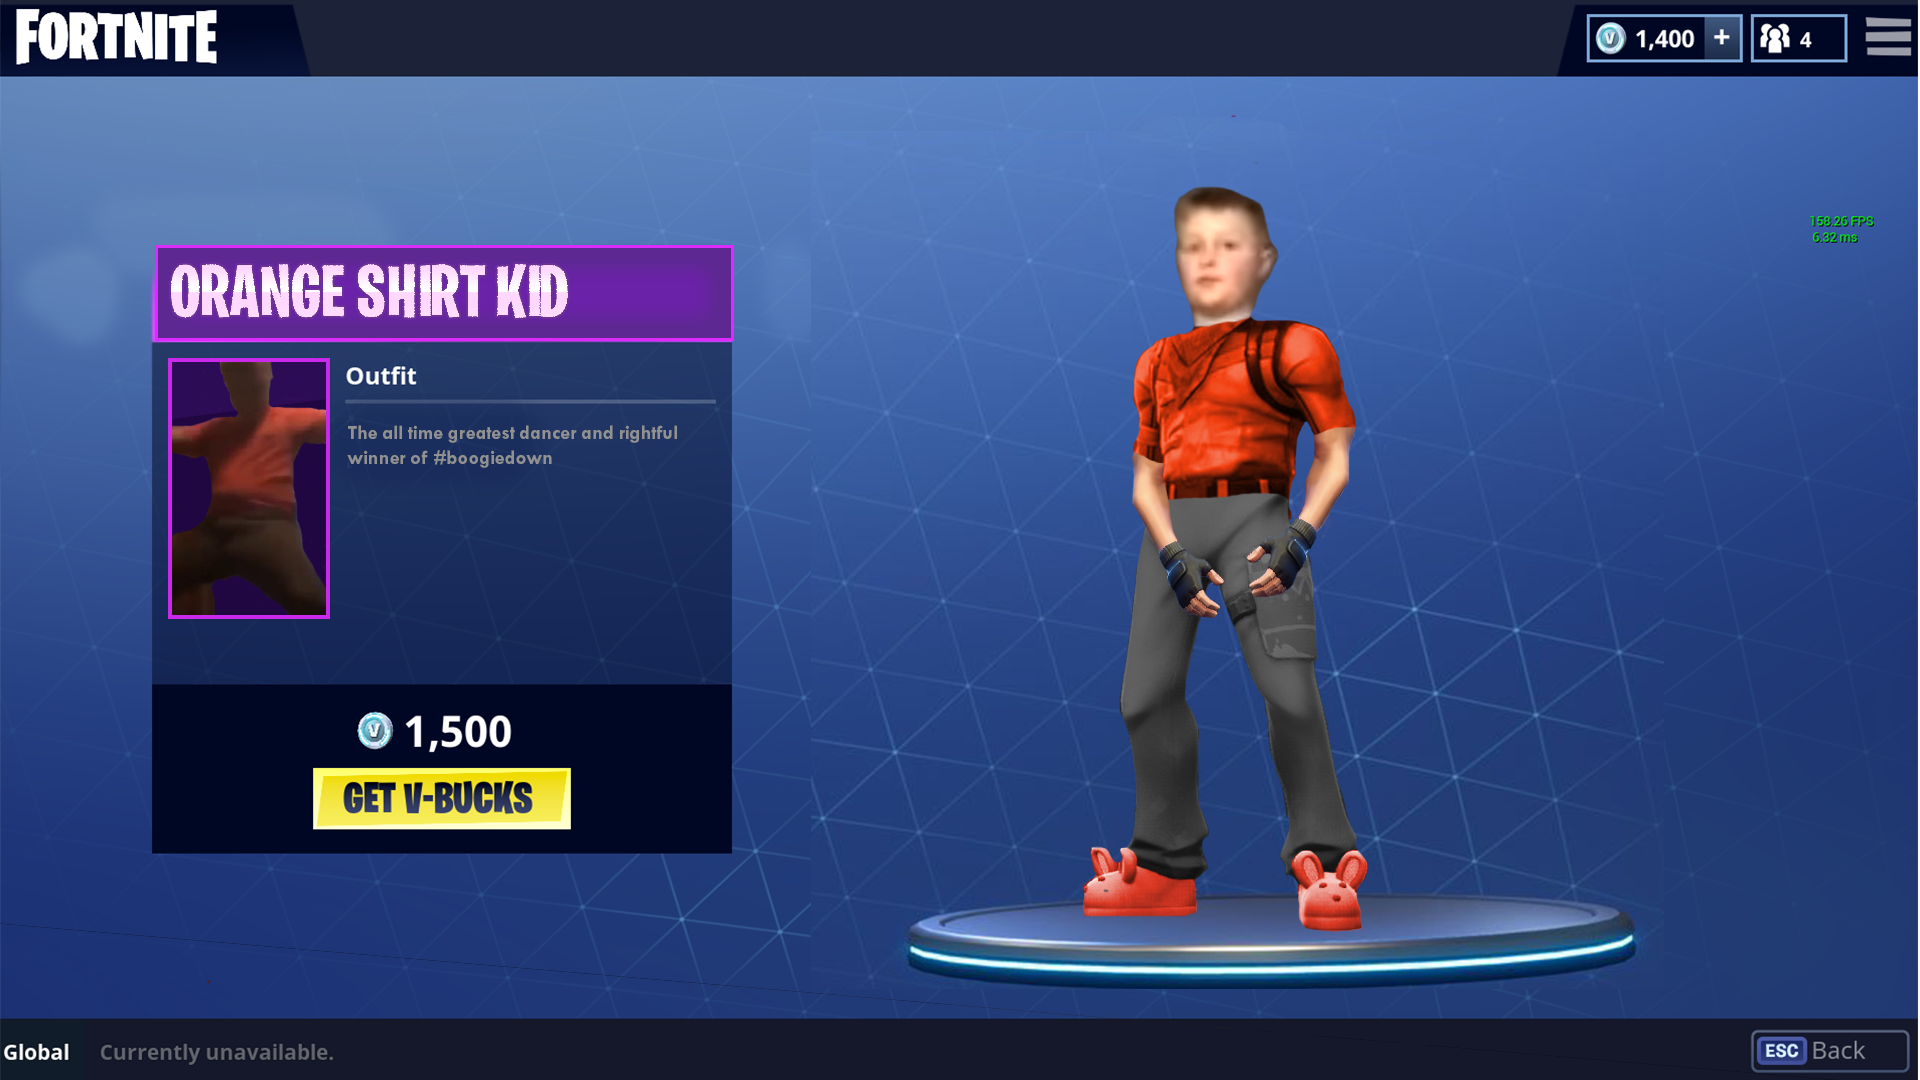 FORTNITE IO 1,400 1,4   158.26 FPS 5.32 Ms ORANGE SHIRT KID Outfit